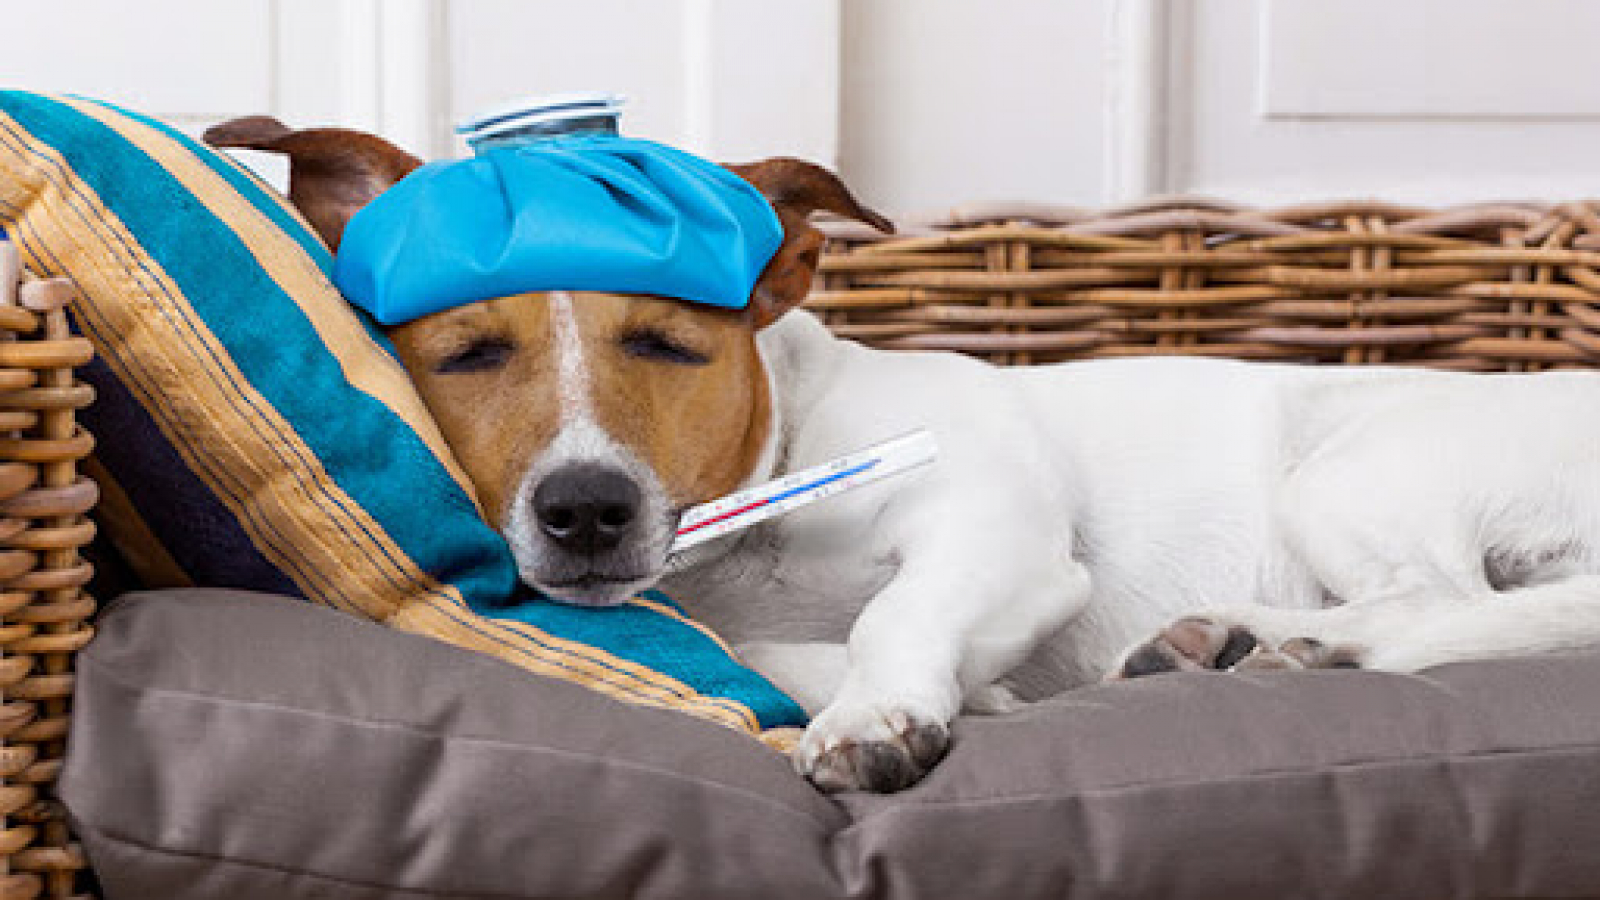 how to tell if dog has fever